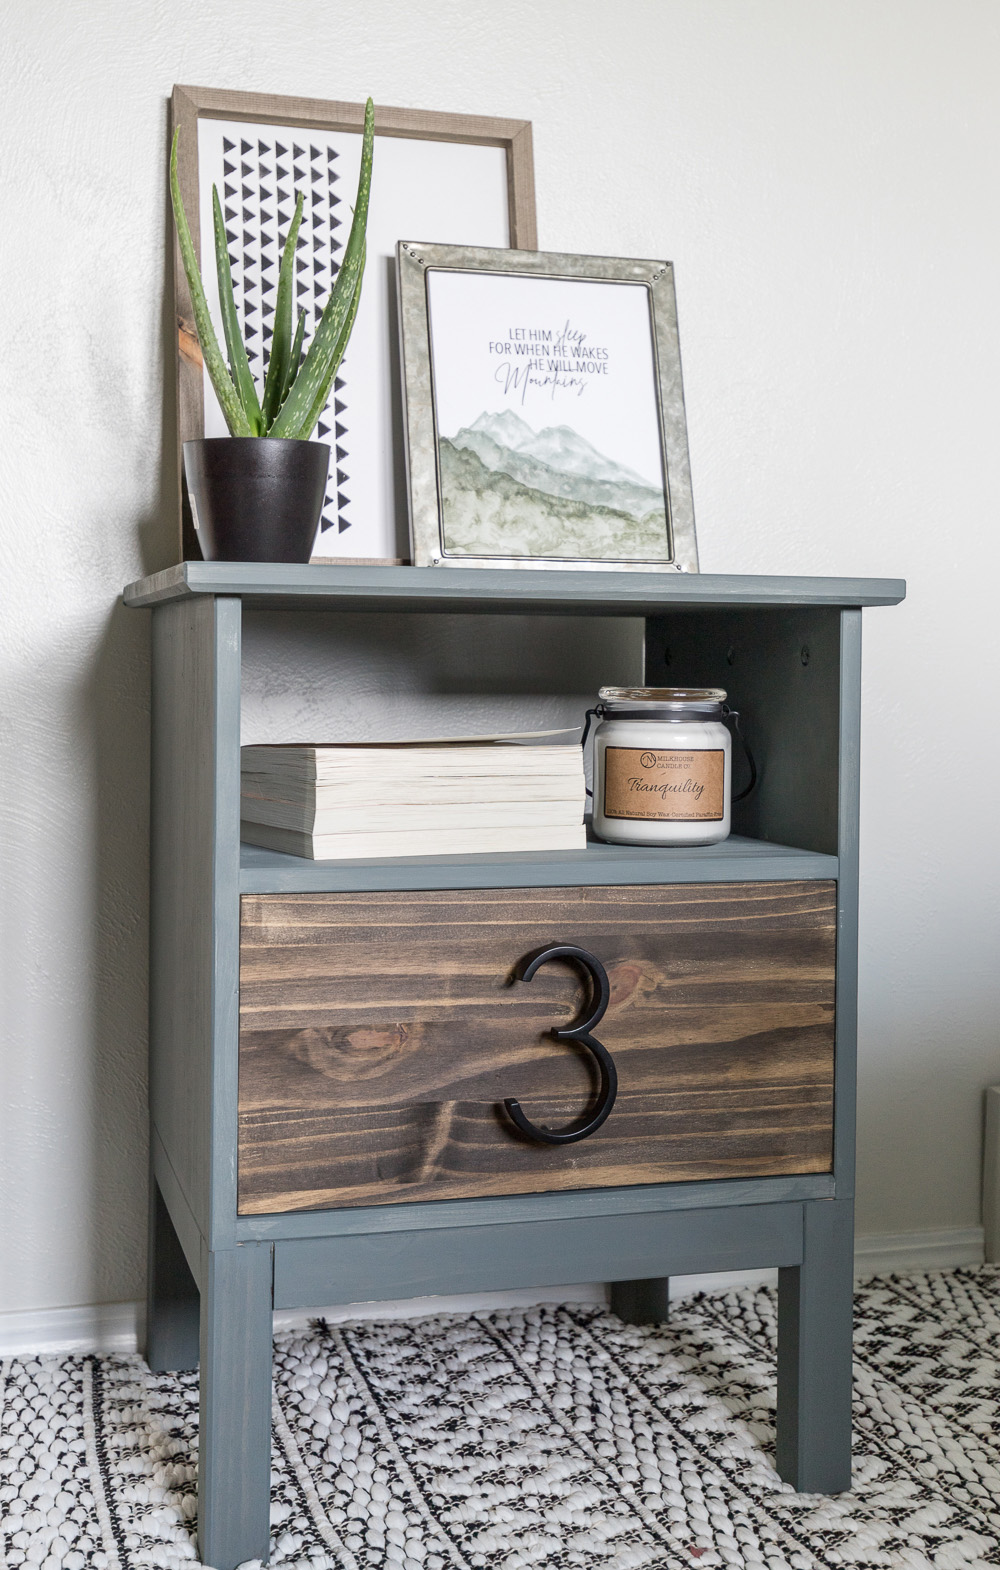 This Tarva IKEA dresser turned into a lovely gray painted night stand